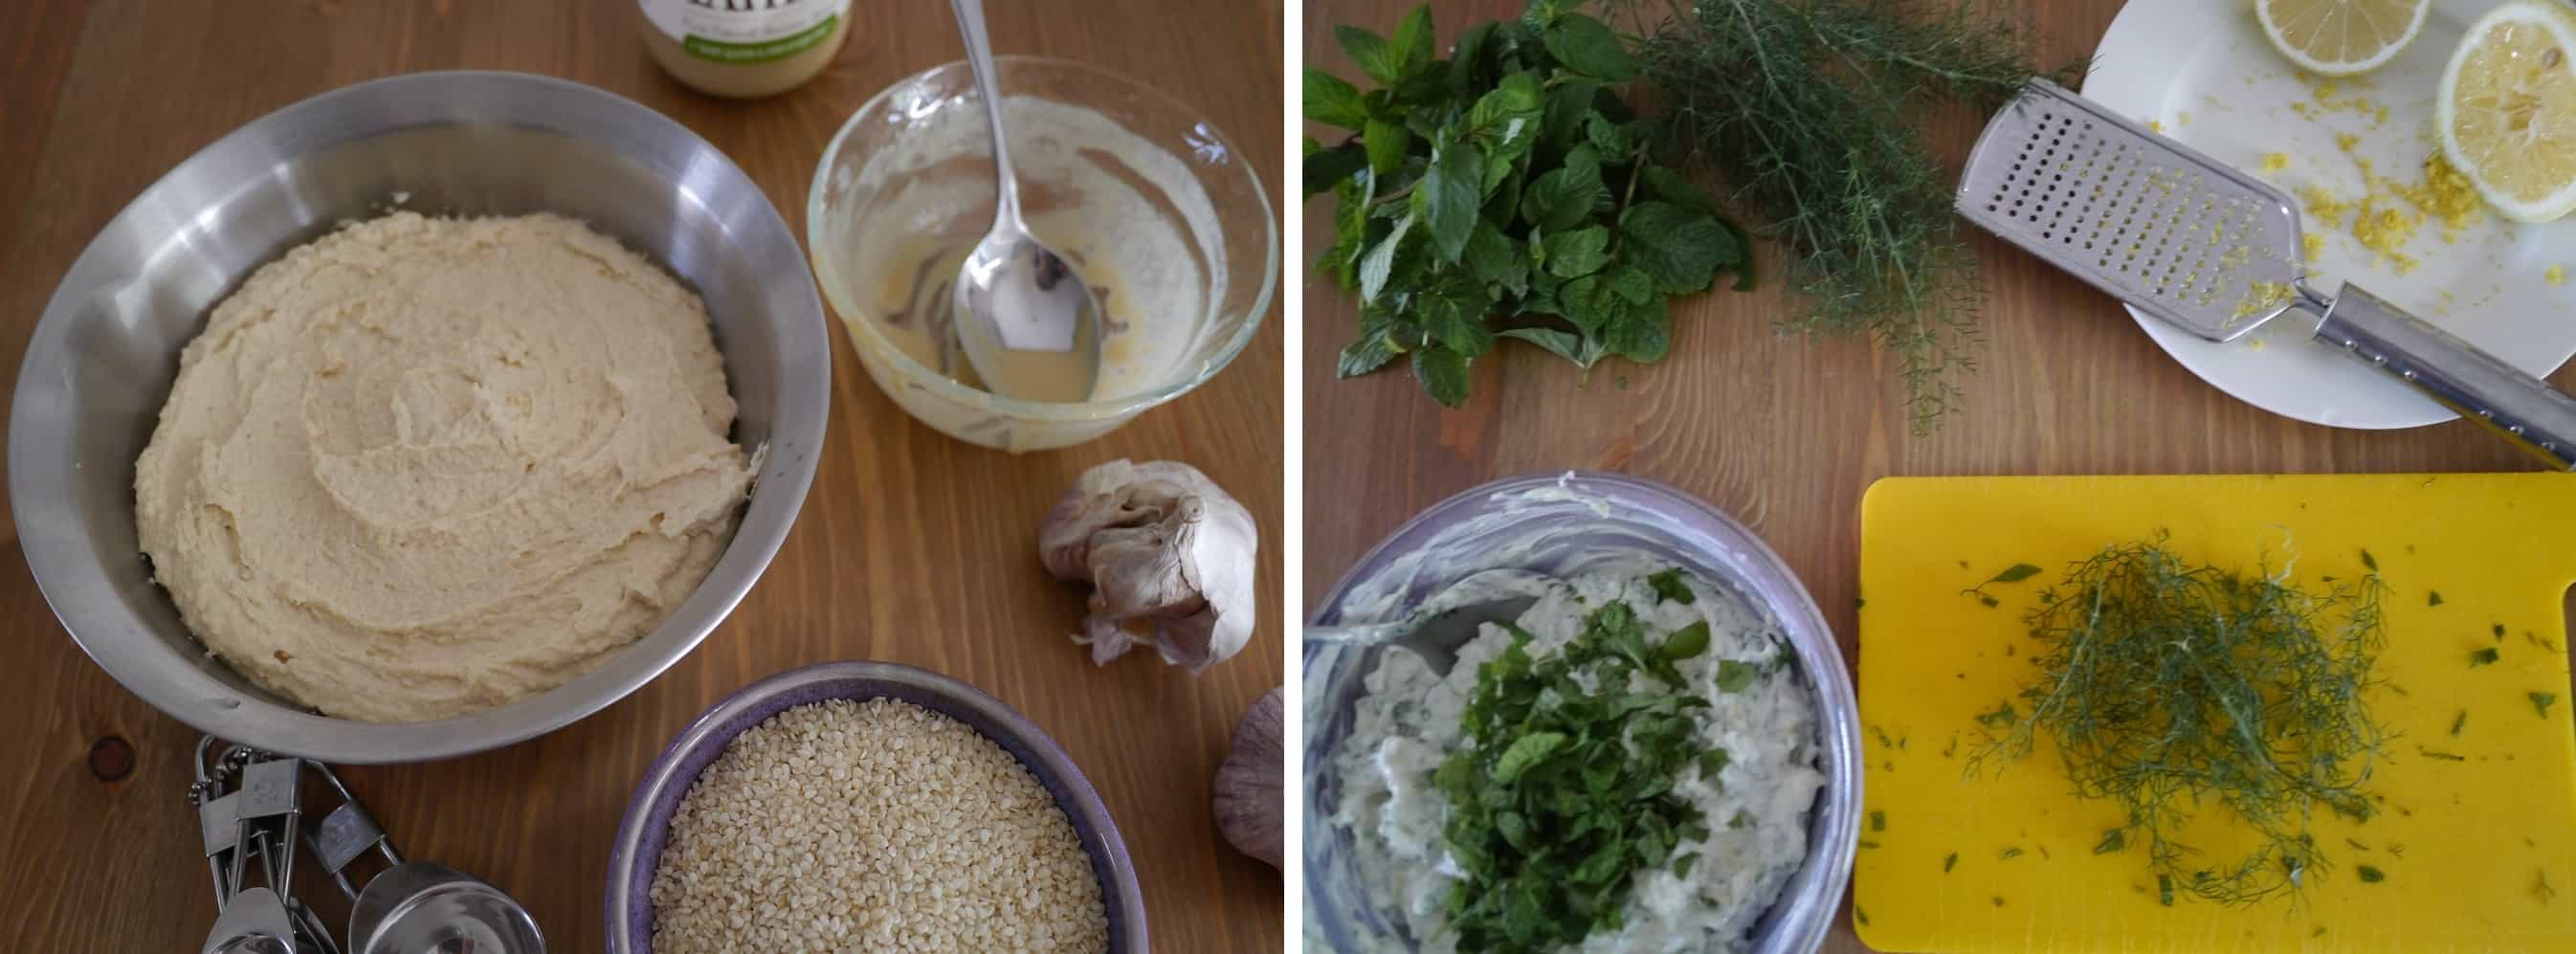 Homemade hummus and tzatziki